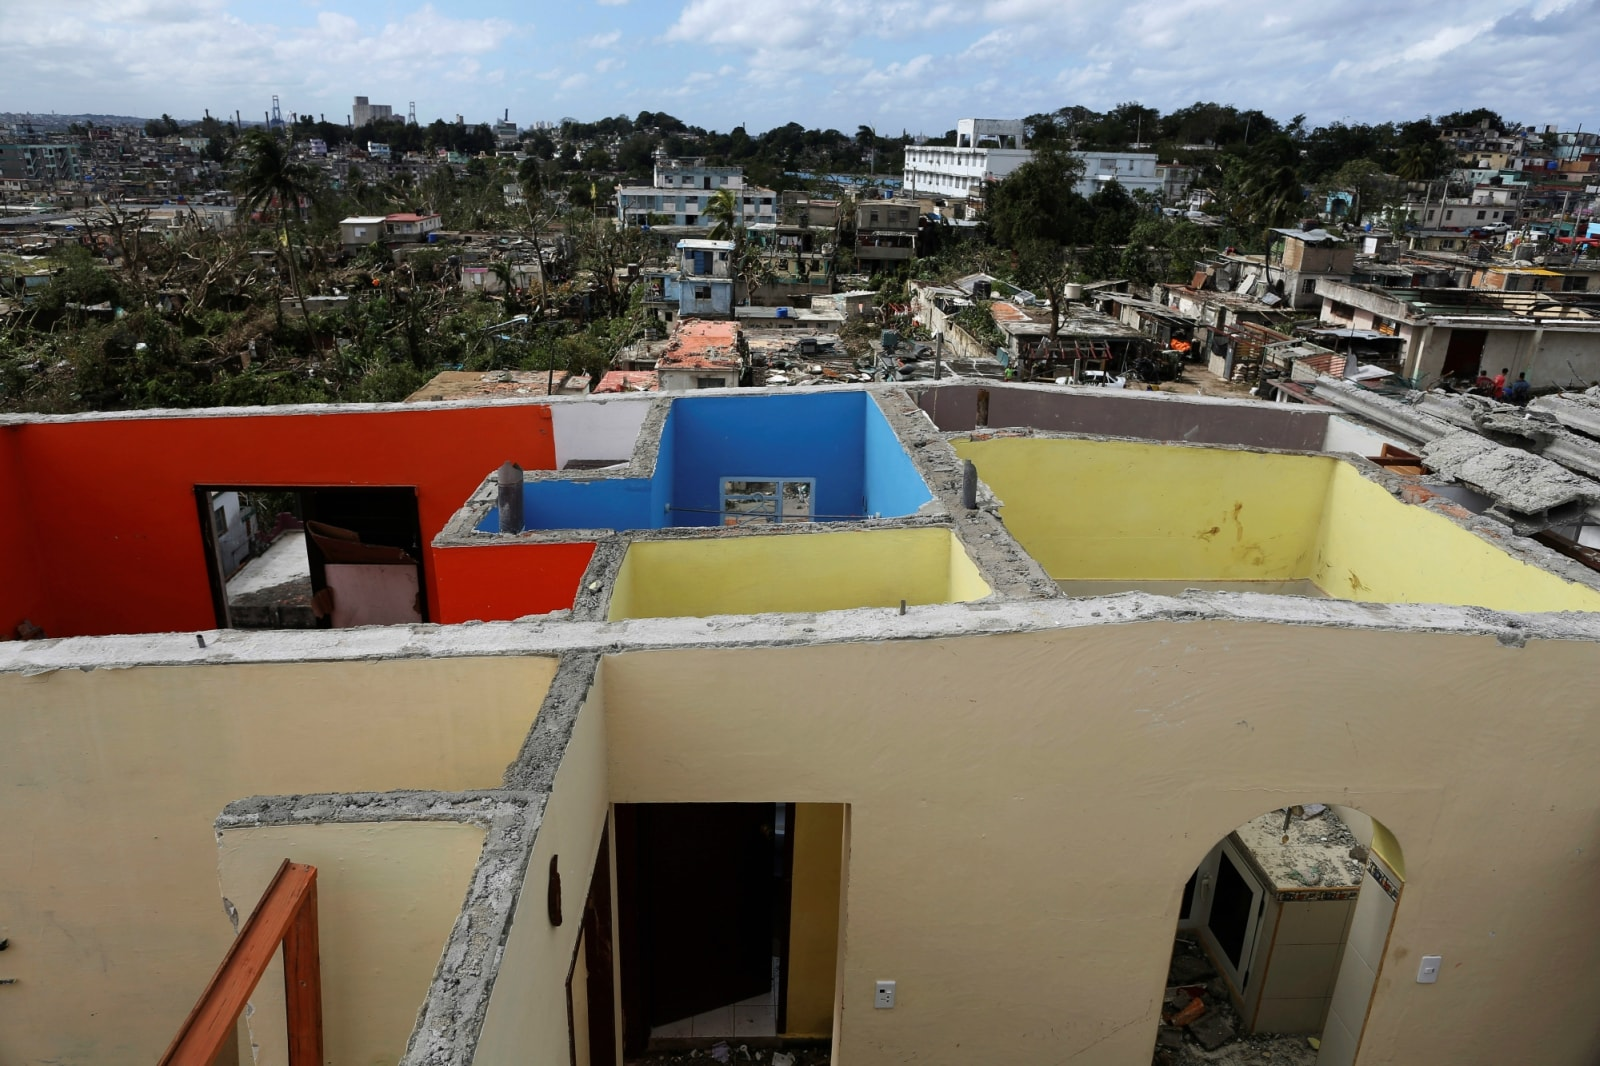 The walls of a house with the roof blown away after a tornado ripped through a neighbourhood, is seen in Havana, Cuba January 28, 2019. REUTERS/Fernando Medina